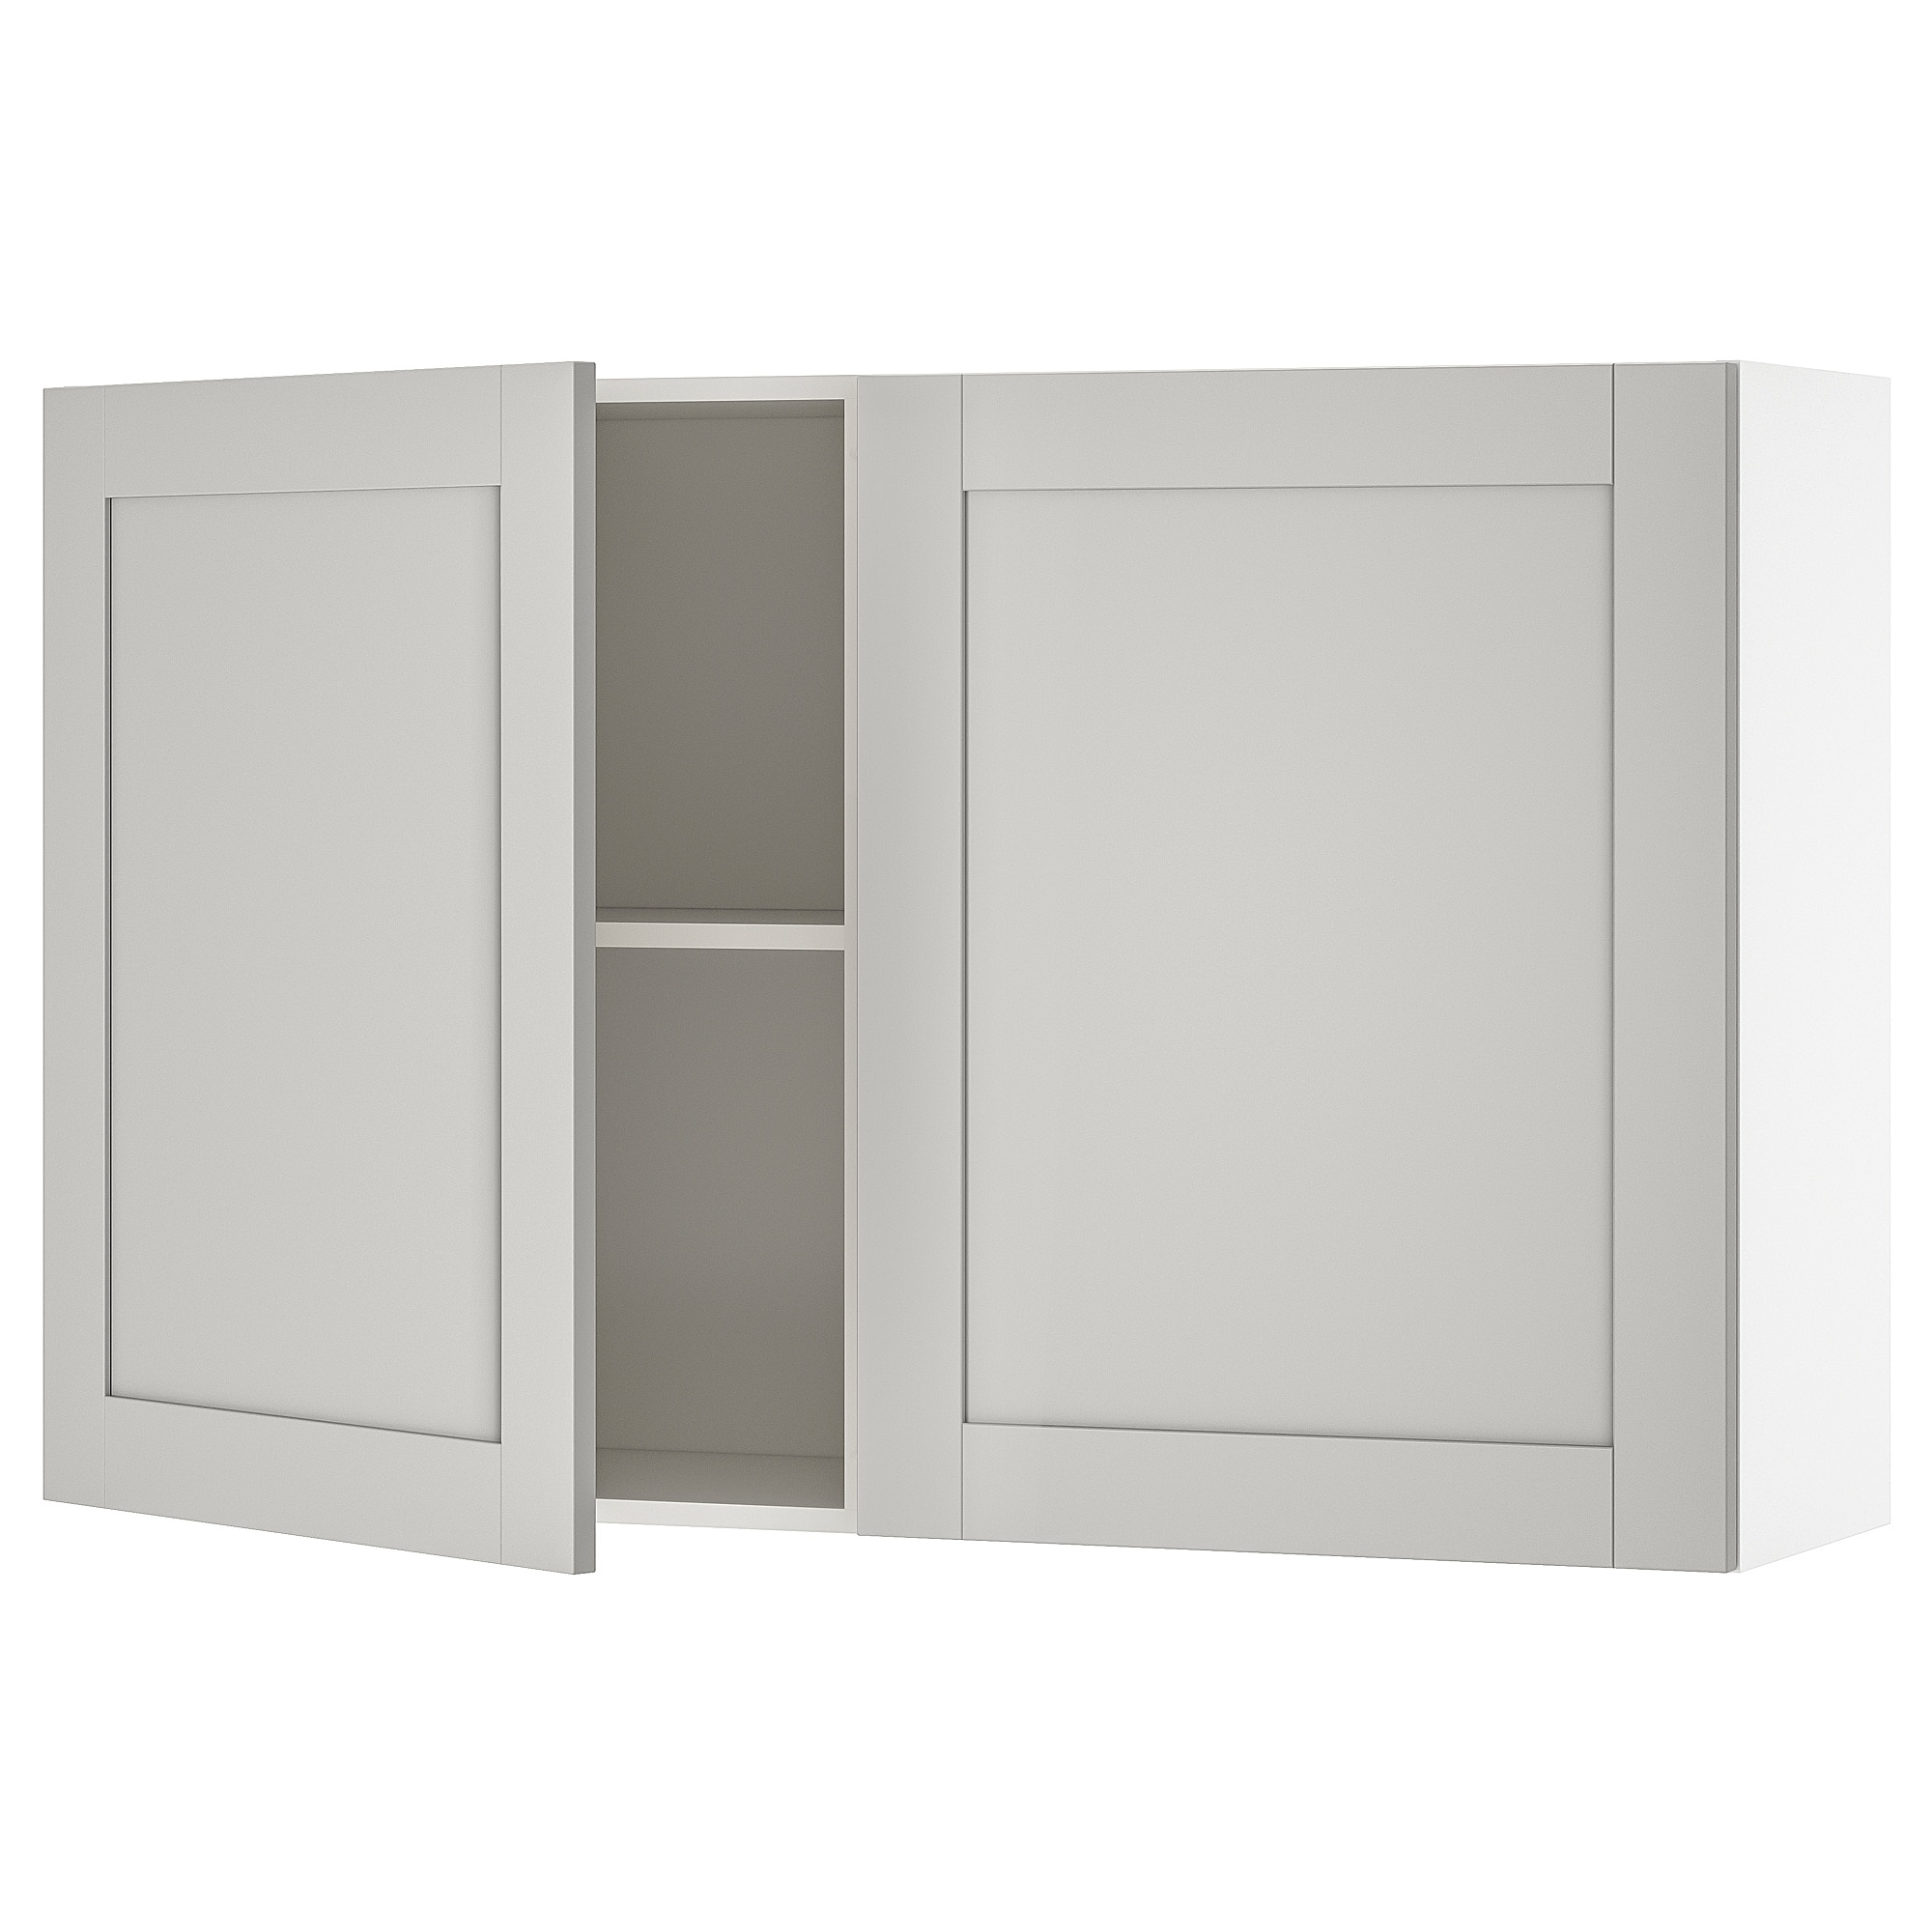 Wall Cabinet With Doors Knoxhult Grey